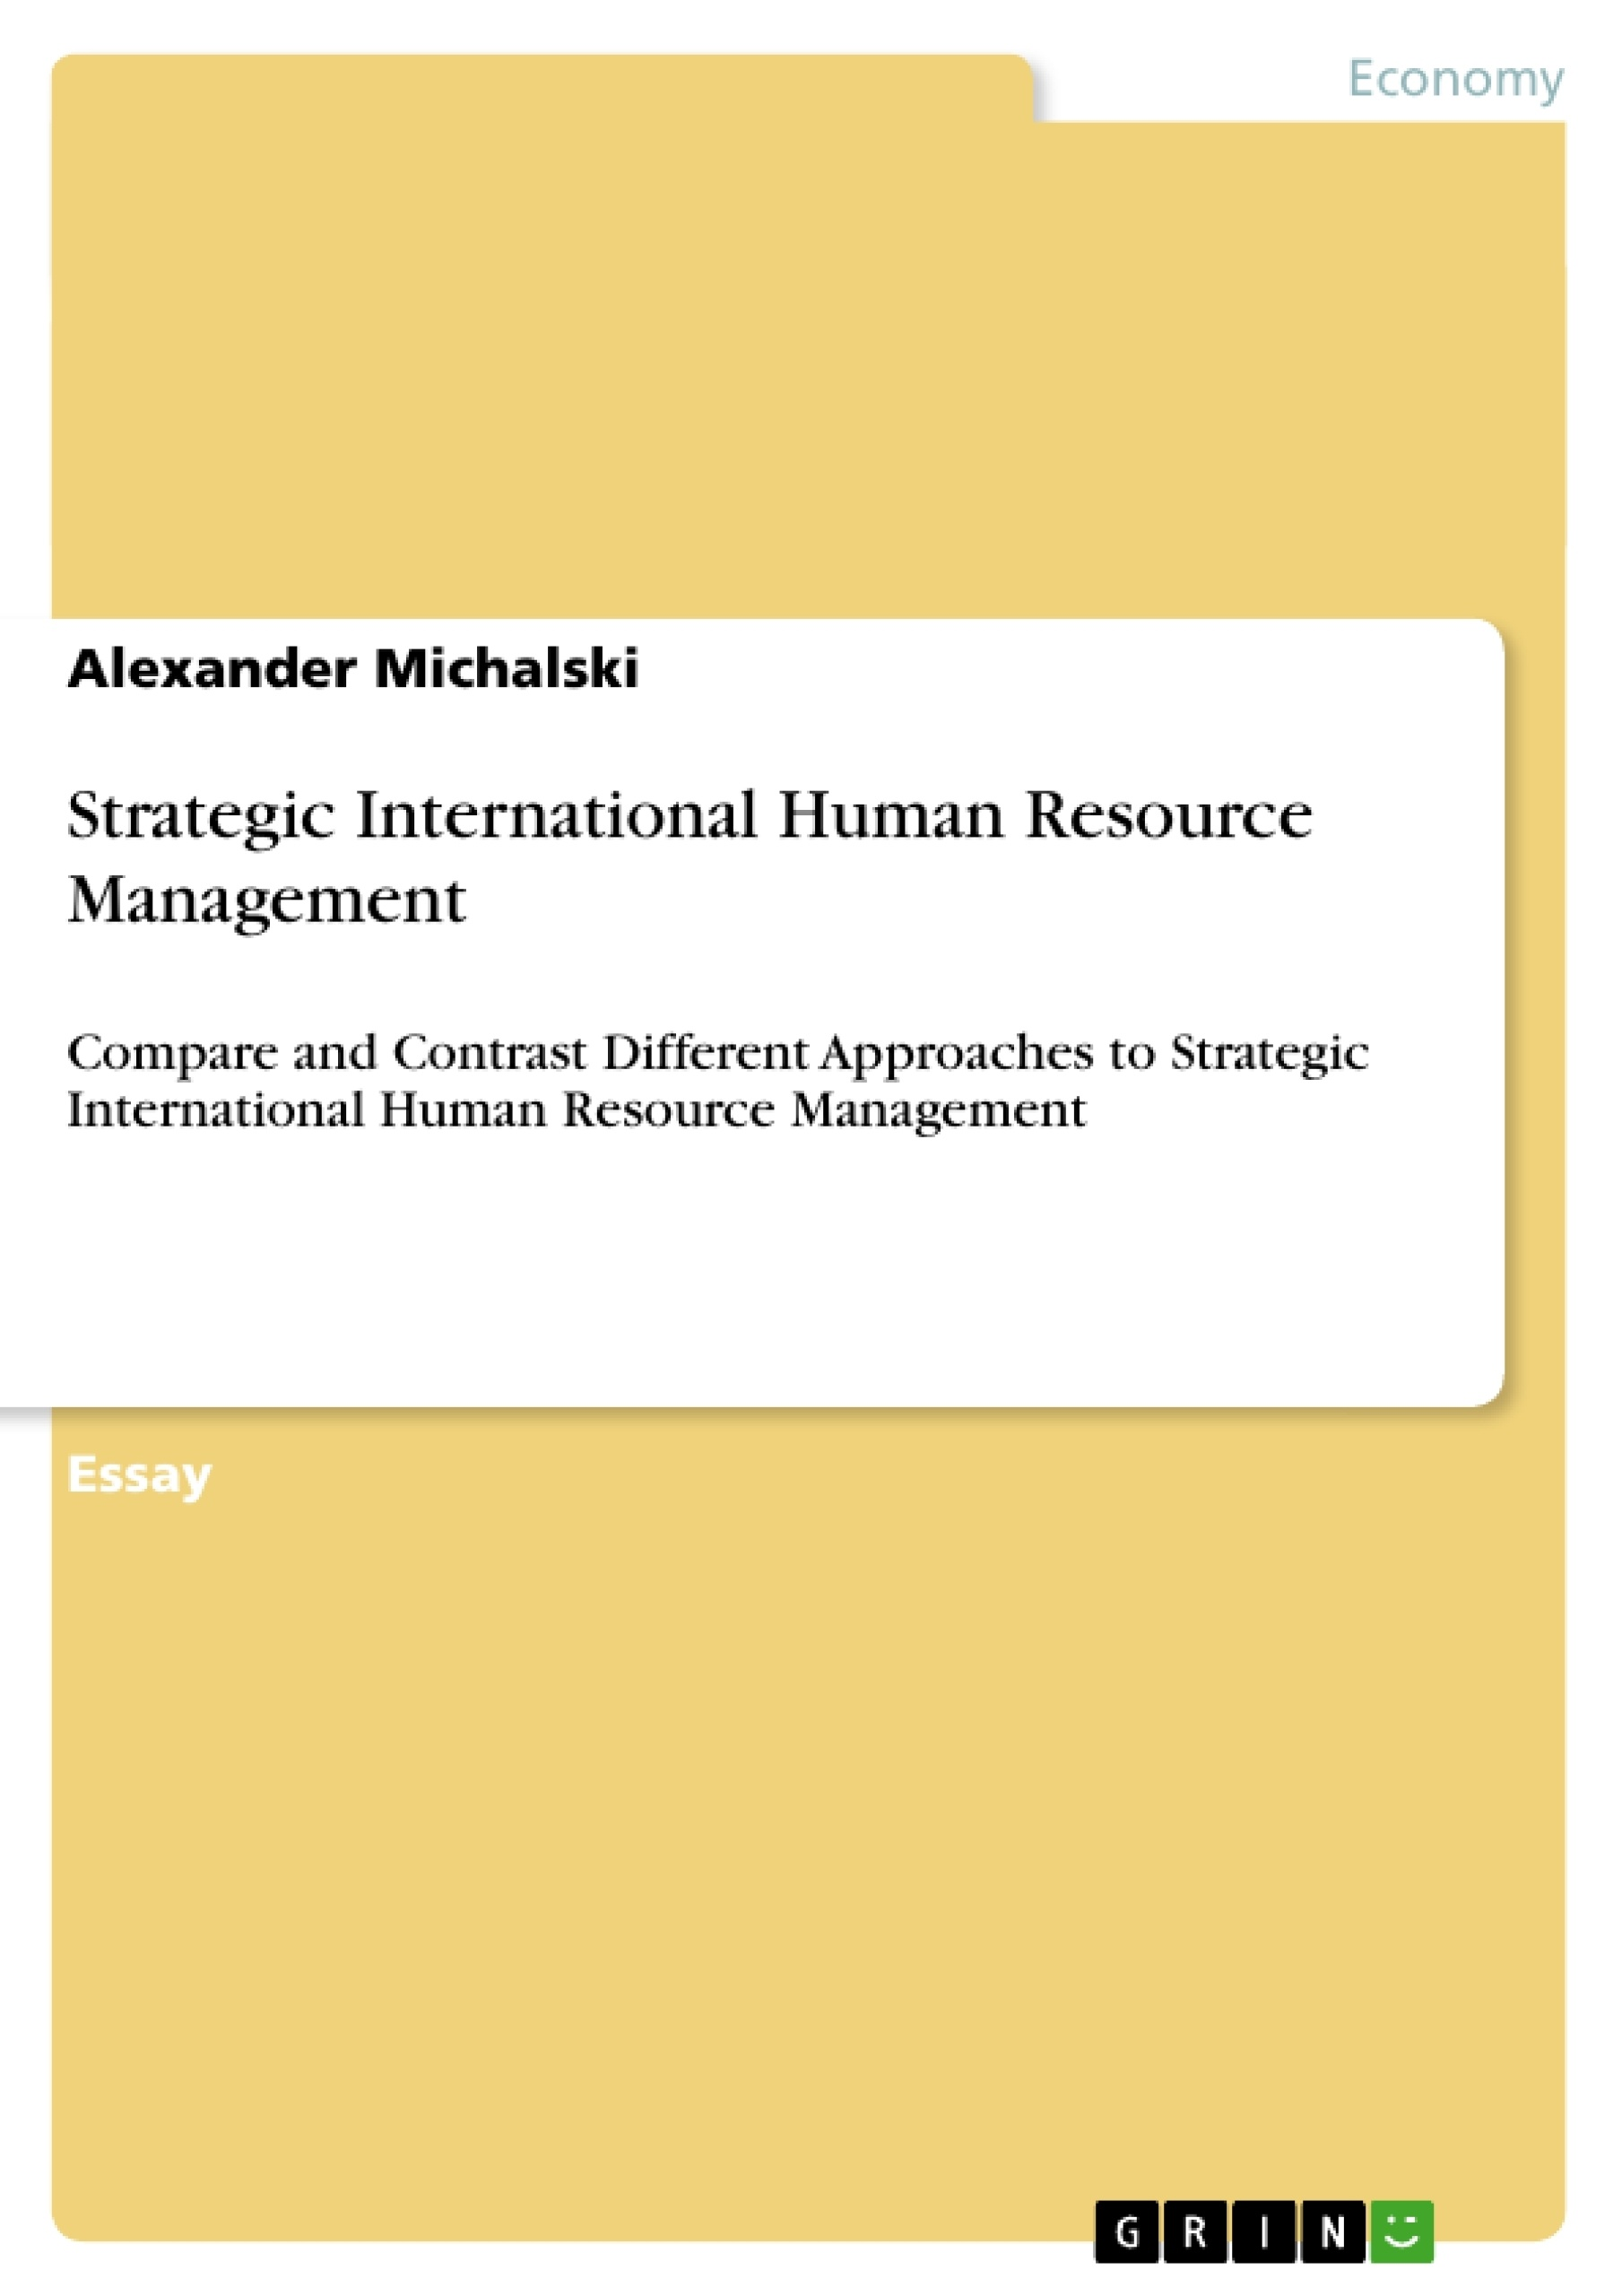 Title: Strategic International Human Resource Management